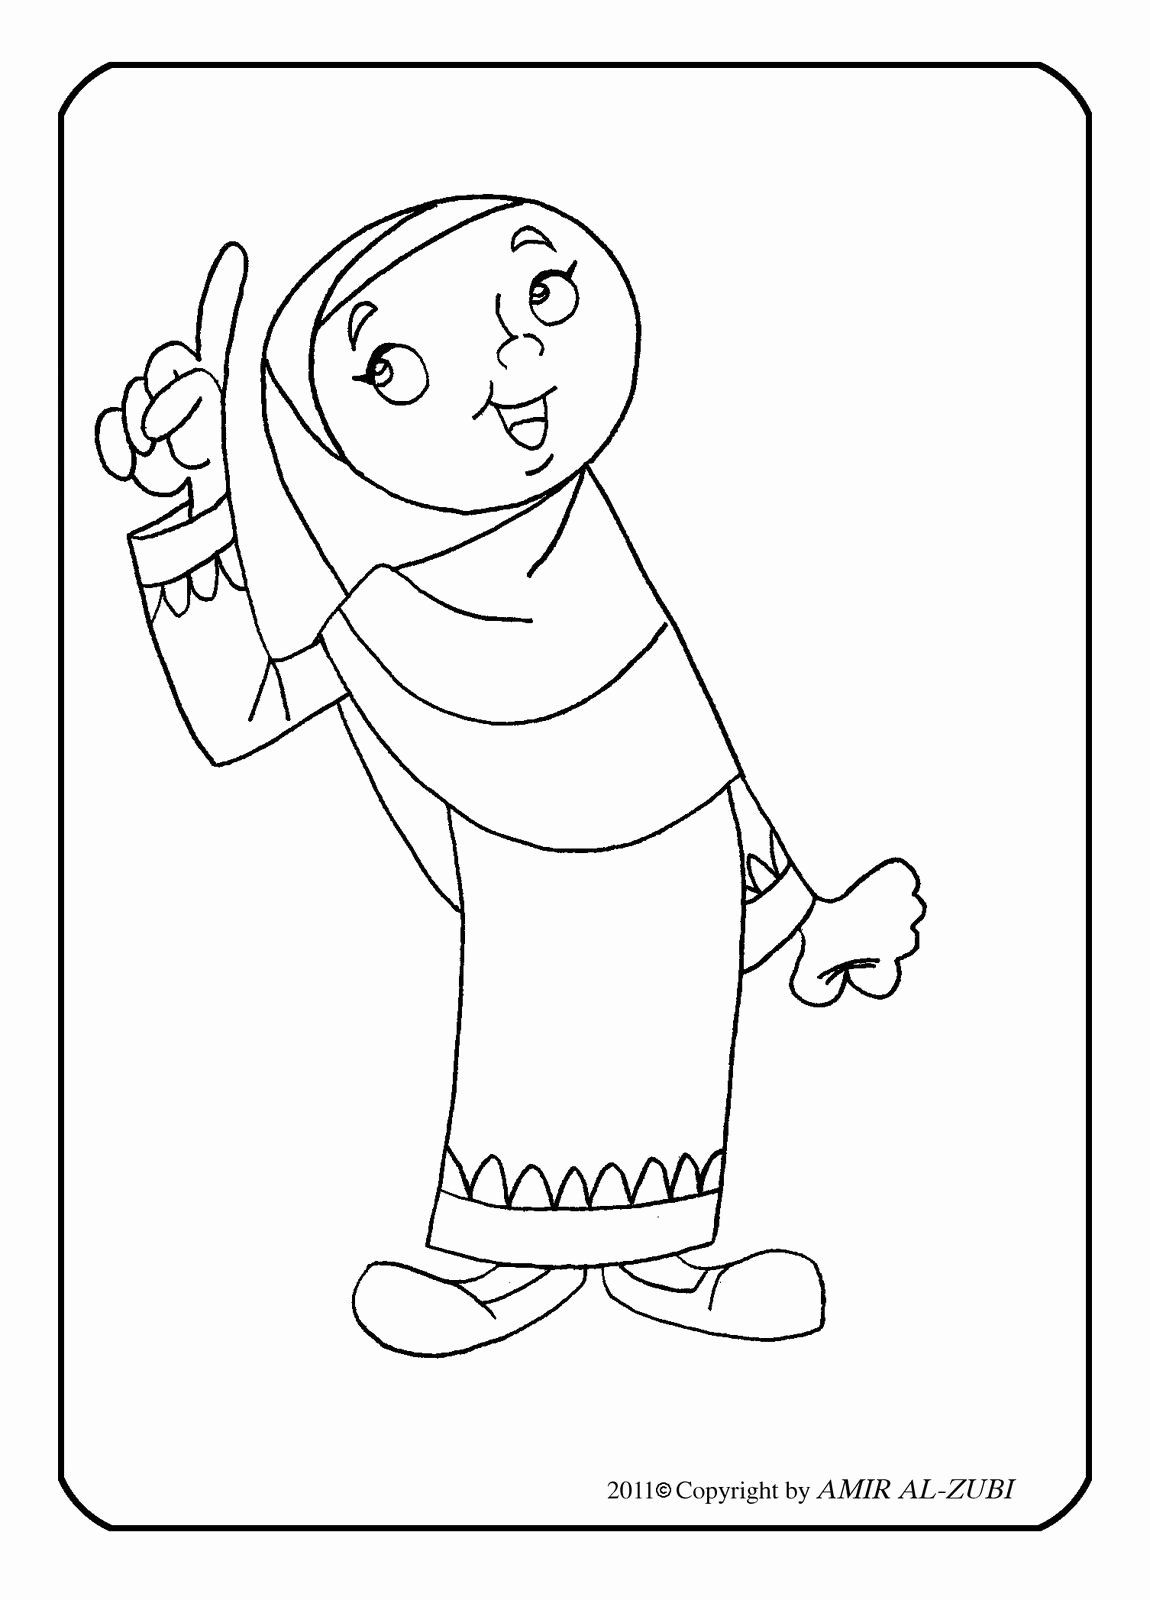 Coloring Islamic Activities For Kids